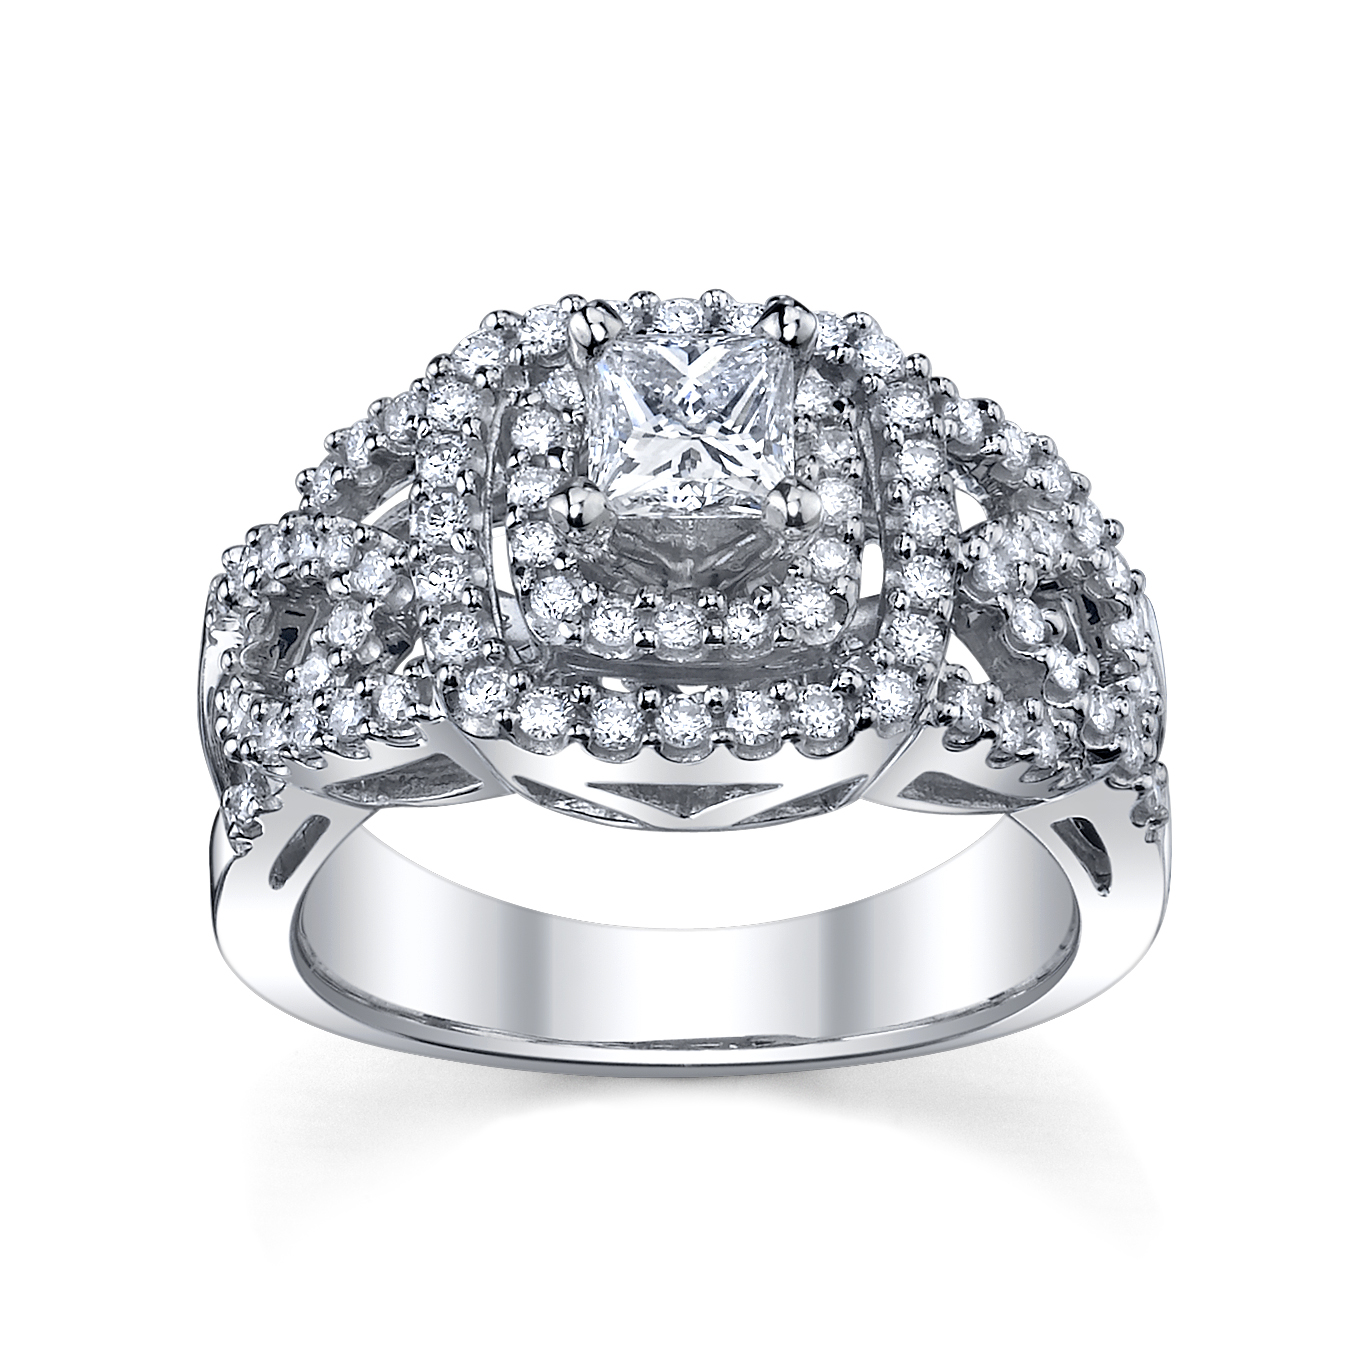 RB Collection | Robbins Brothers Engagement Rings, Proposals & Weddings